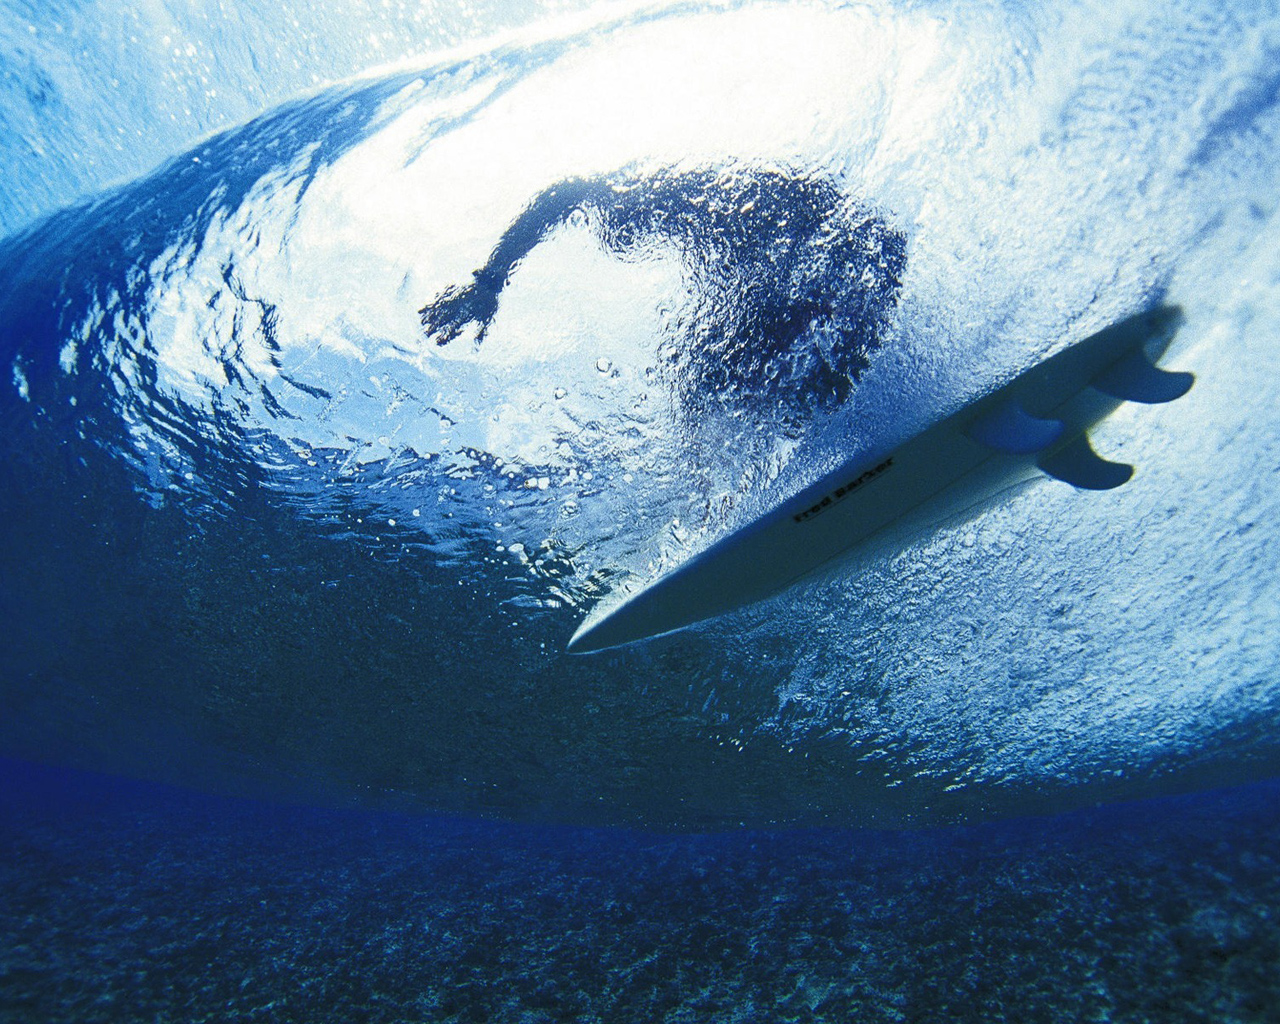 Surfer above